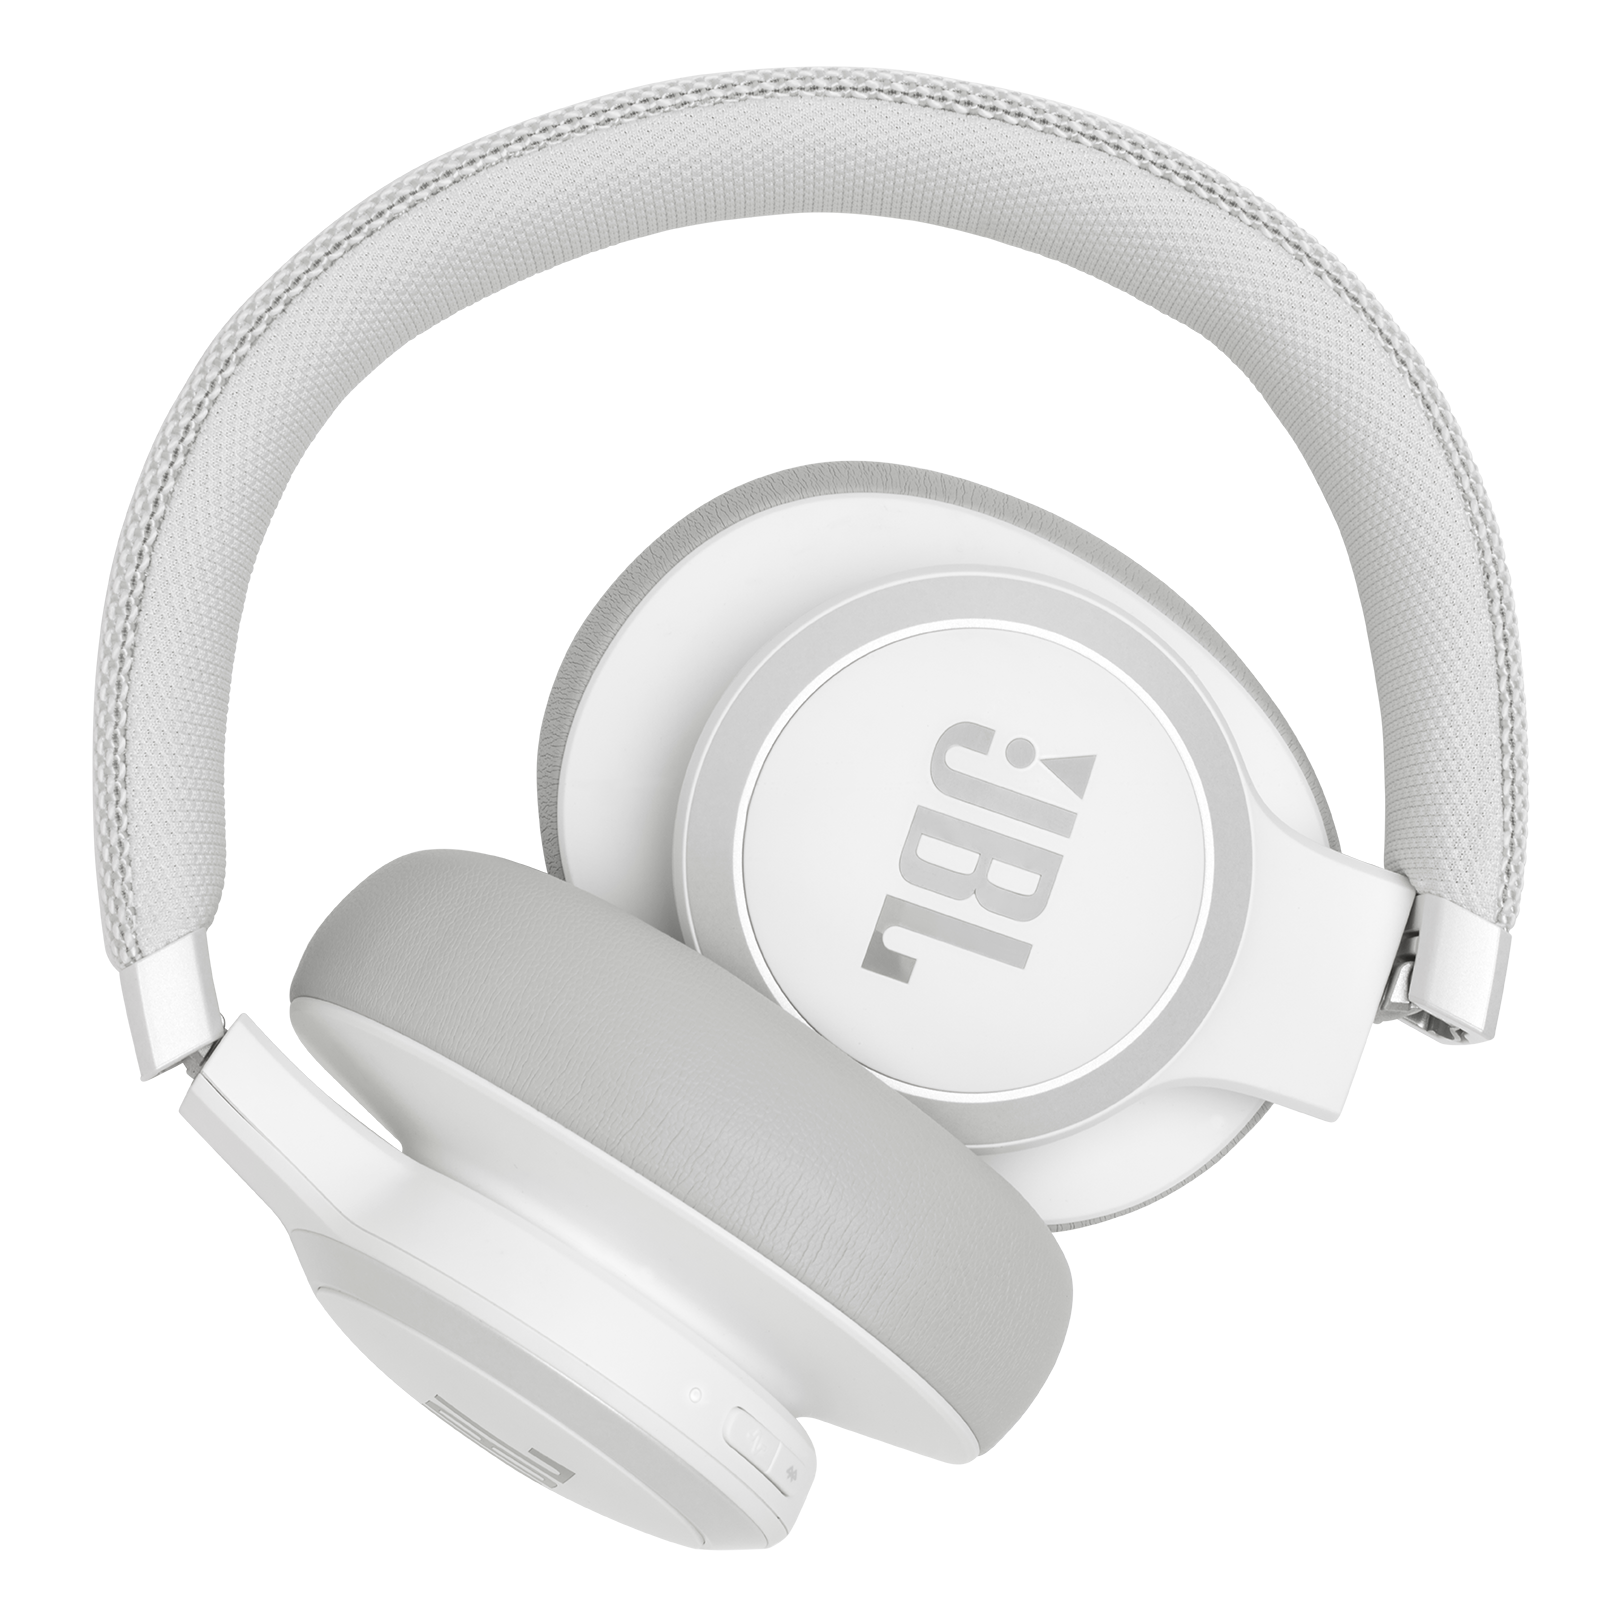 JBL LIVE 650BTNC - White - Wireless Over-Ear Noise-Cancelling Headphones - Detailshot 6